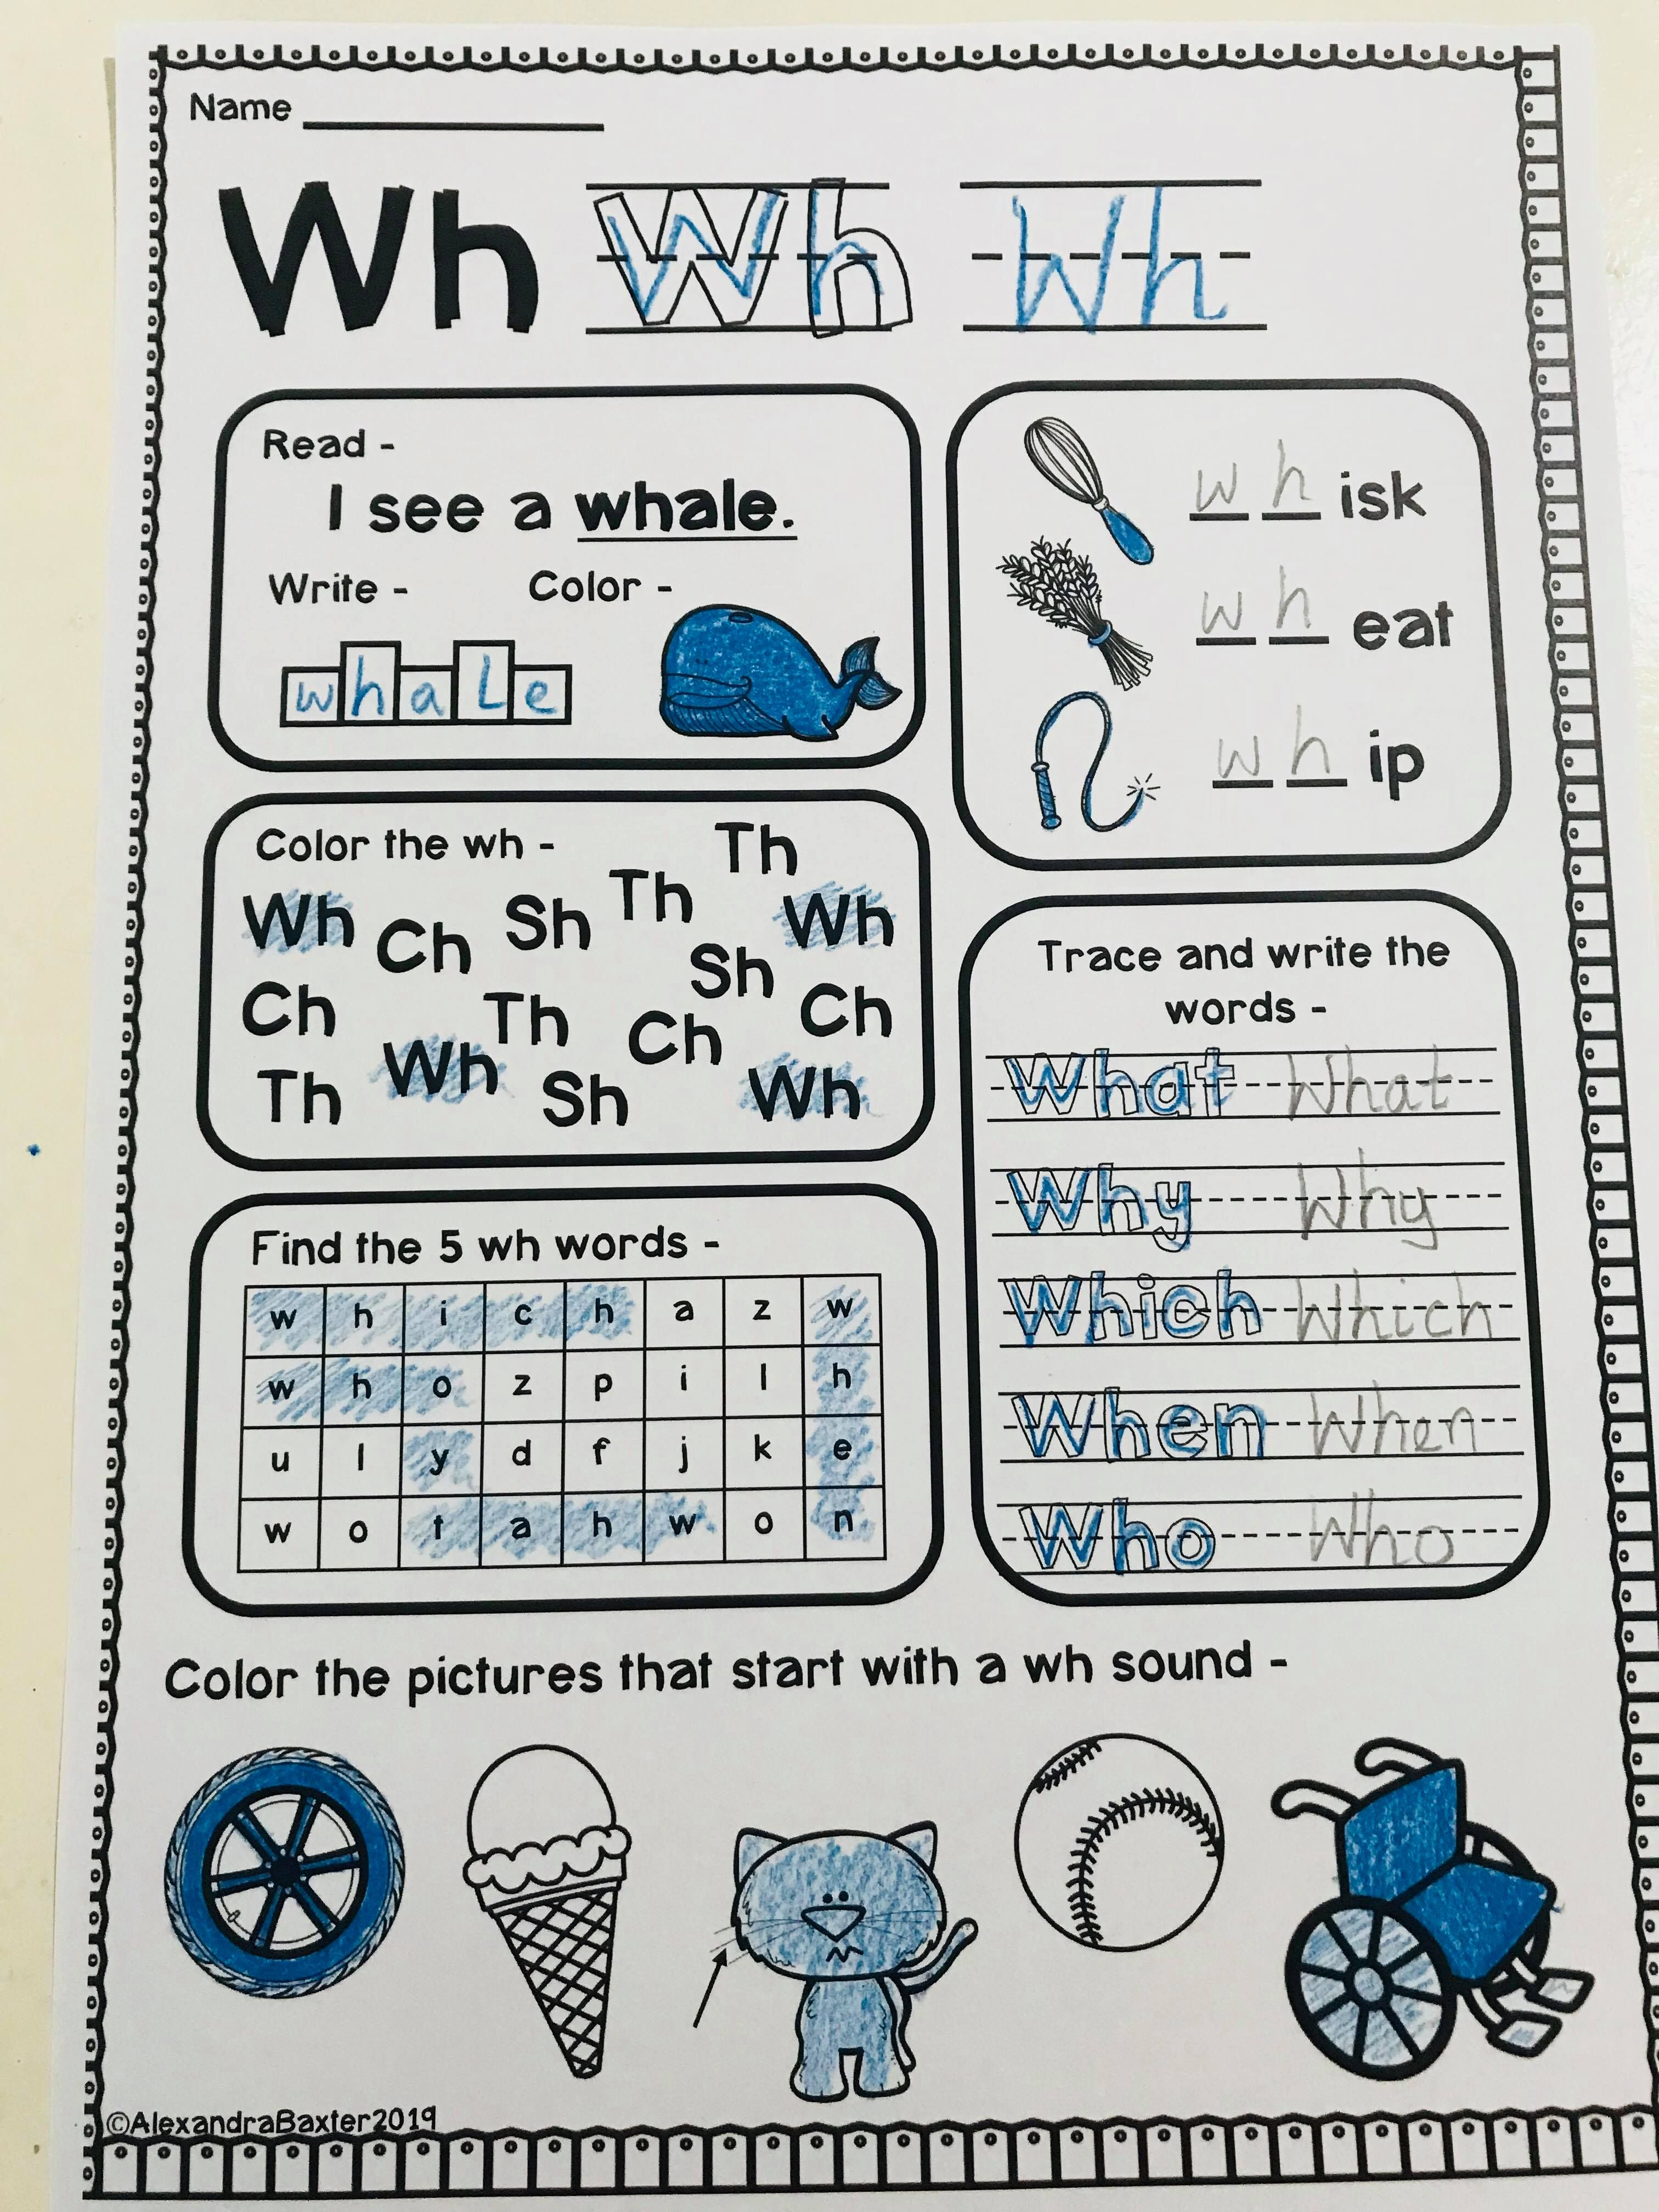 Phonics Worksheets Digraphs   Printable Worksheets and Activities for  Teachers [ 4032 x 3024 Pixel ]